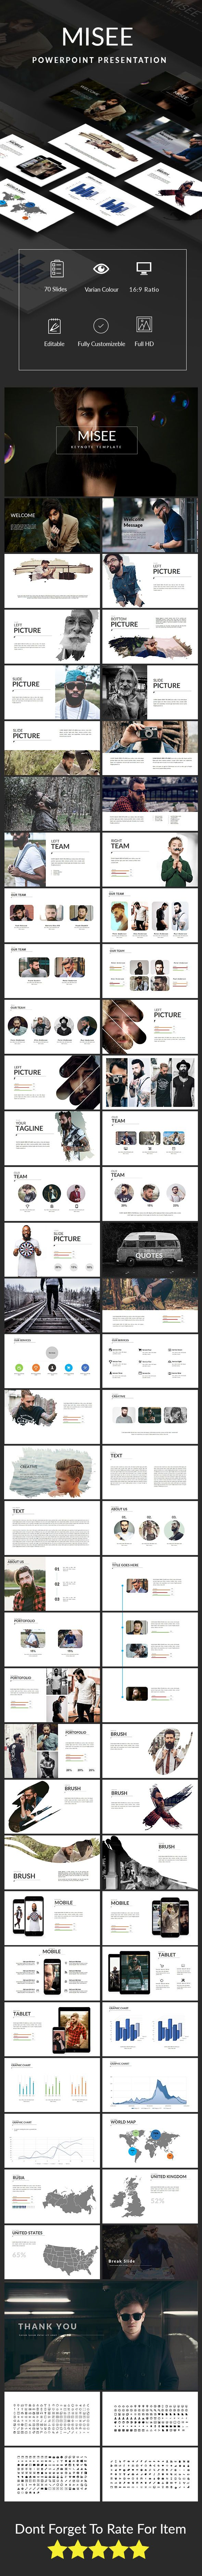 Misee Keynote Presentation Template